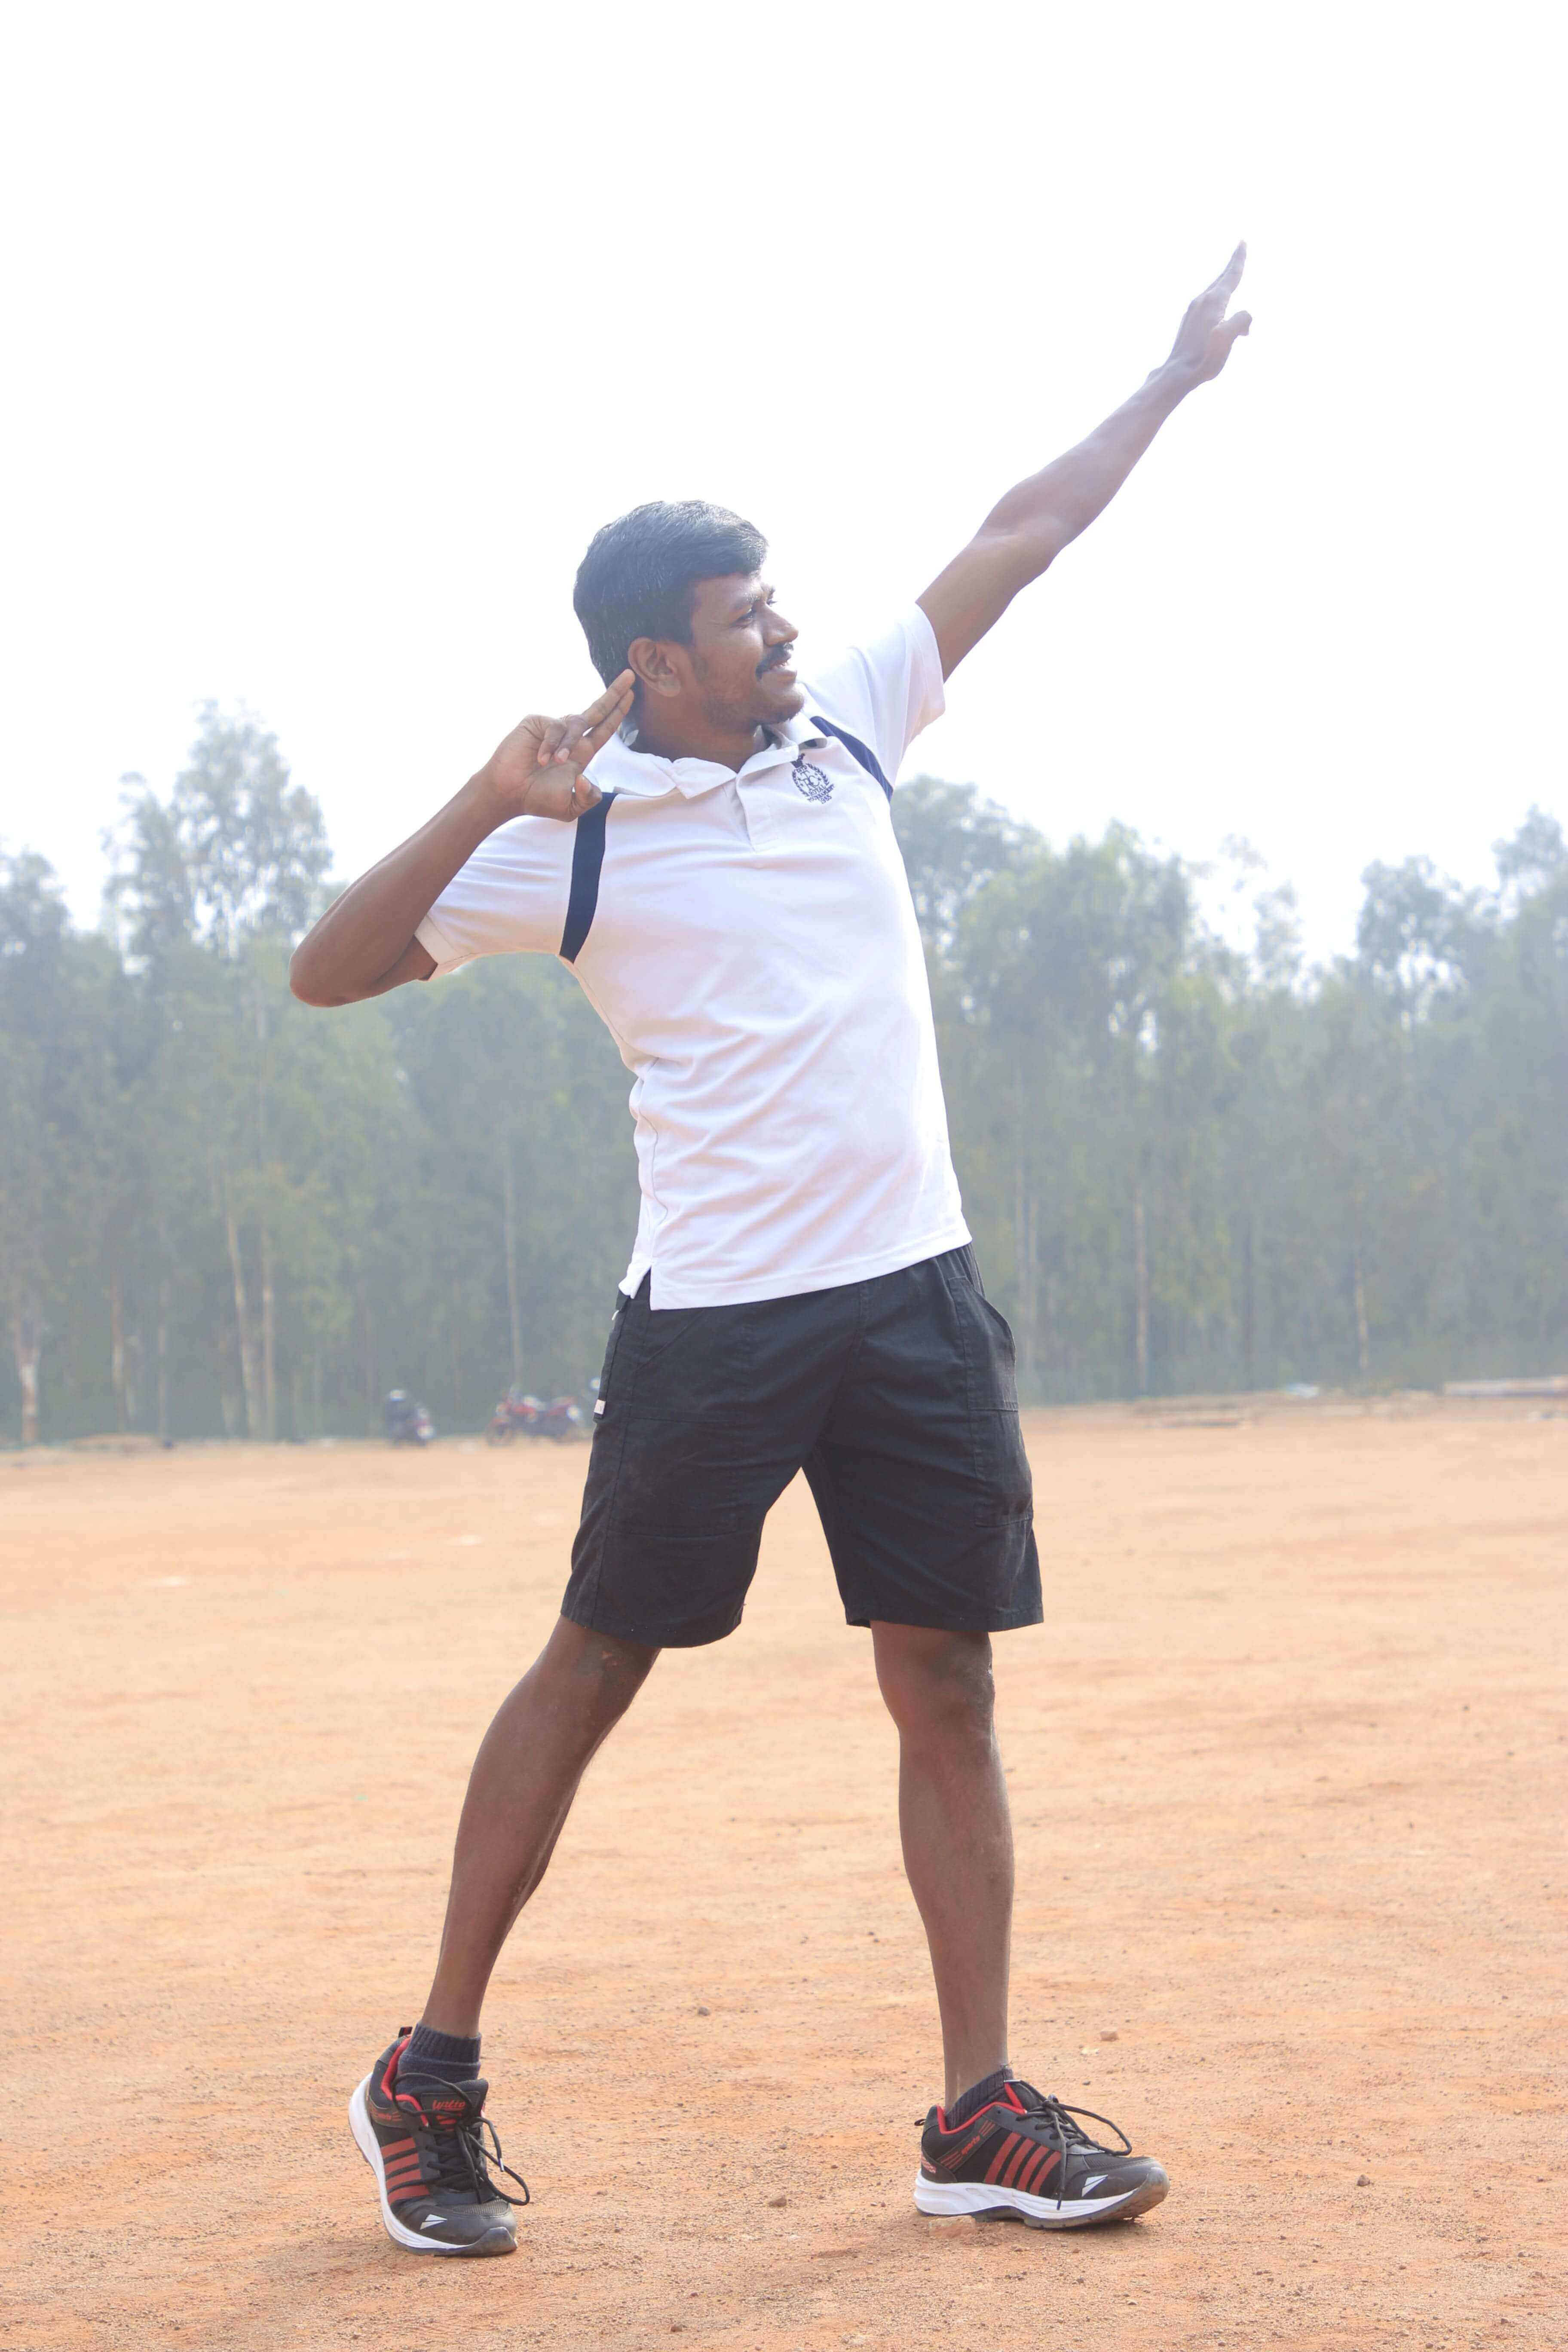 100meter_winner_boy navaneeth rajan